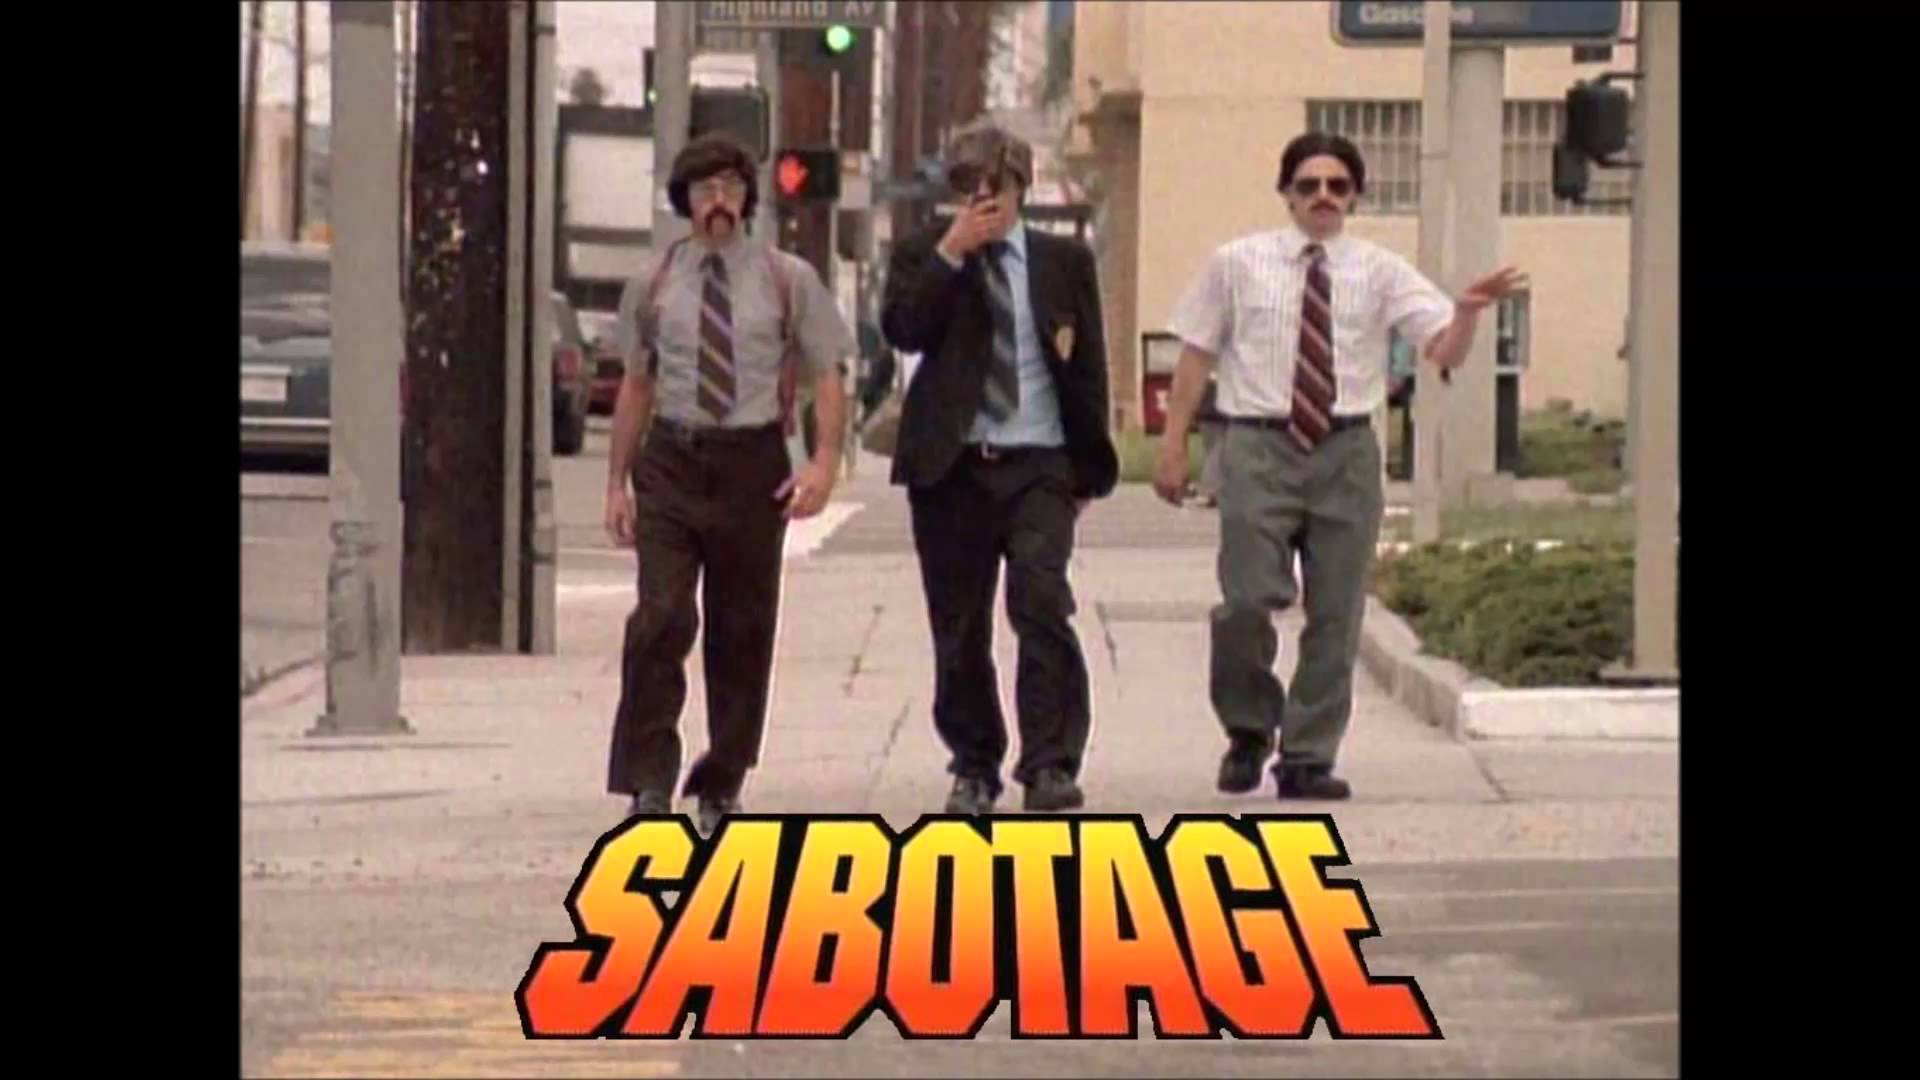 Spartan-Killington-Sabotage